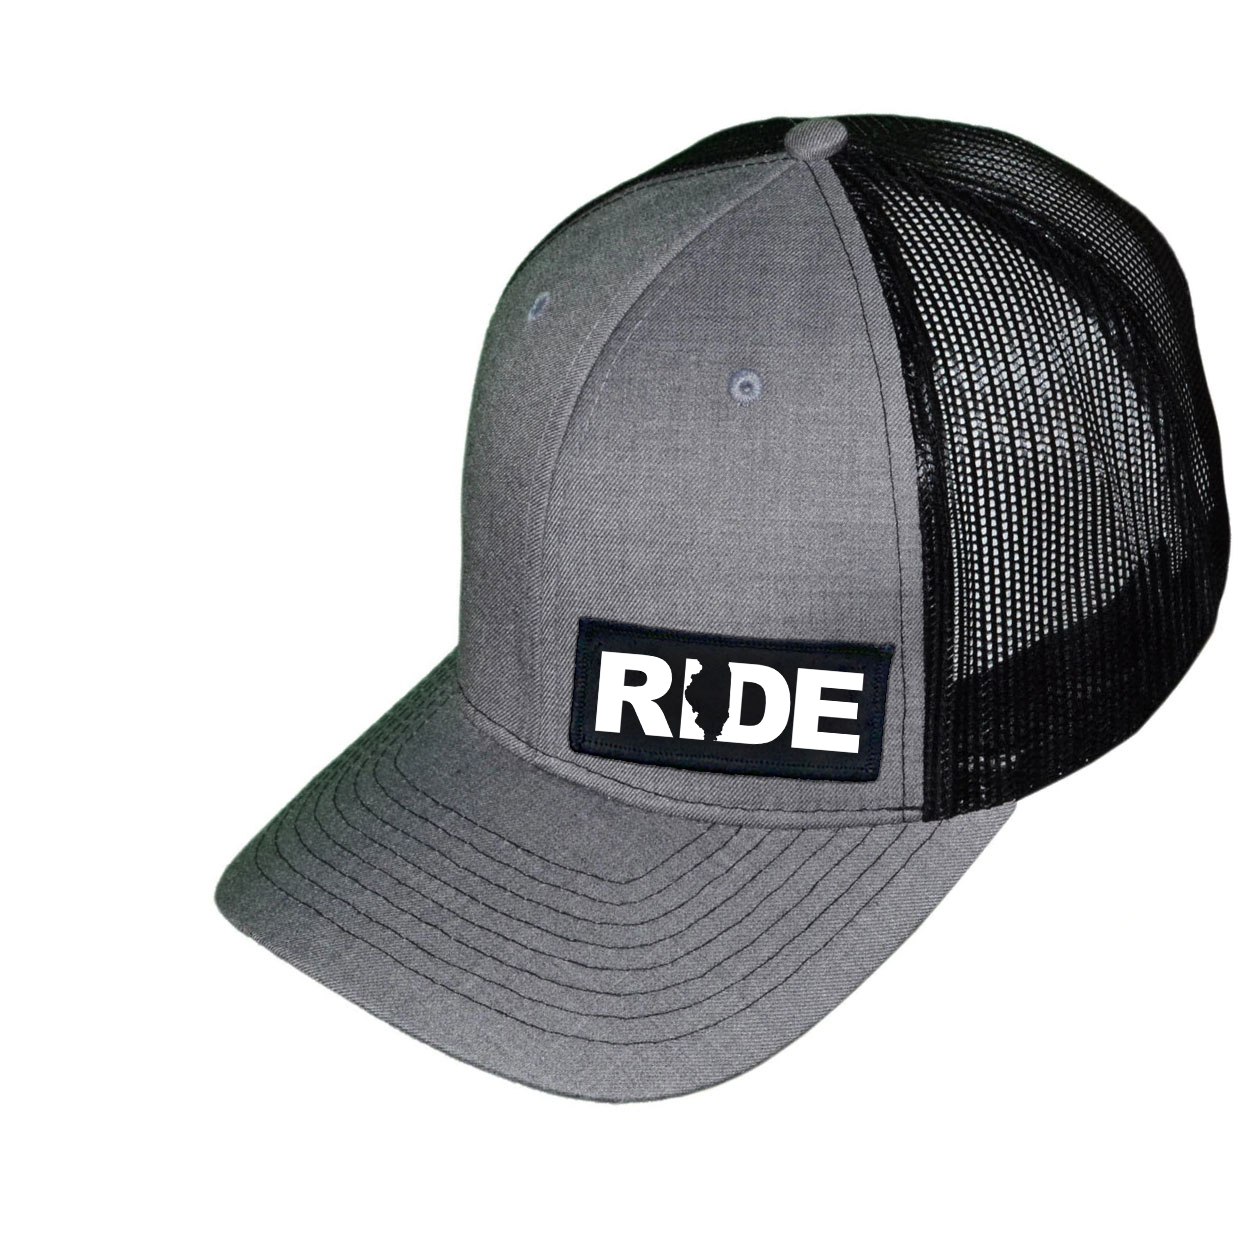 Ride Illinois Night Out Woven Patch Snapback Trucker Hat Heather Gray/Black (White Logo)